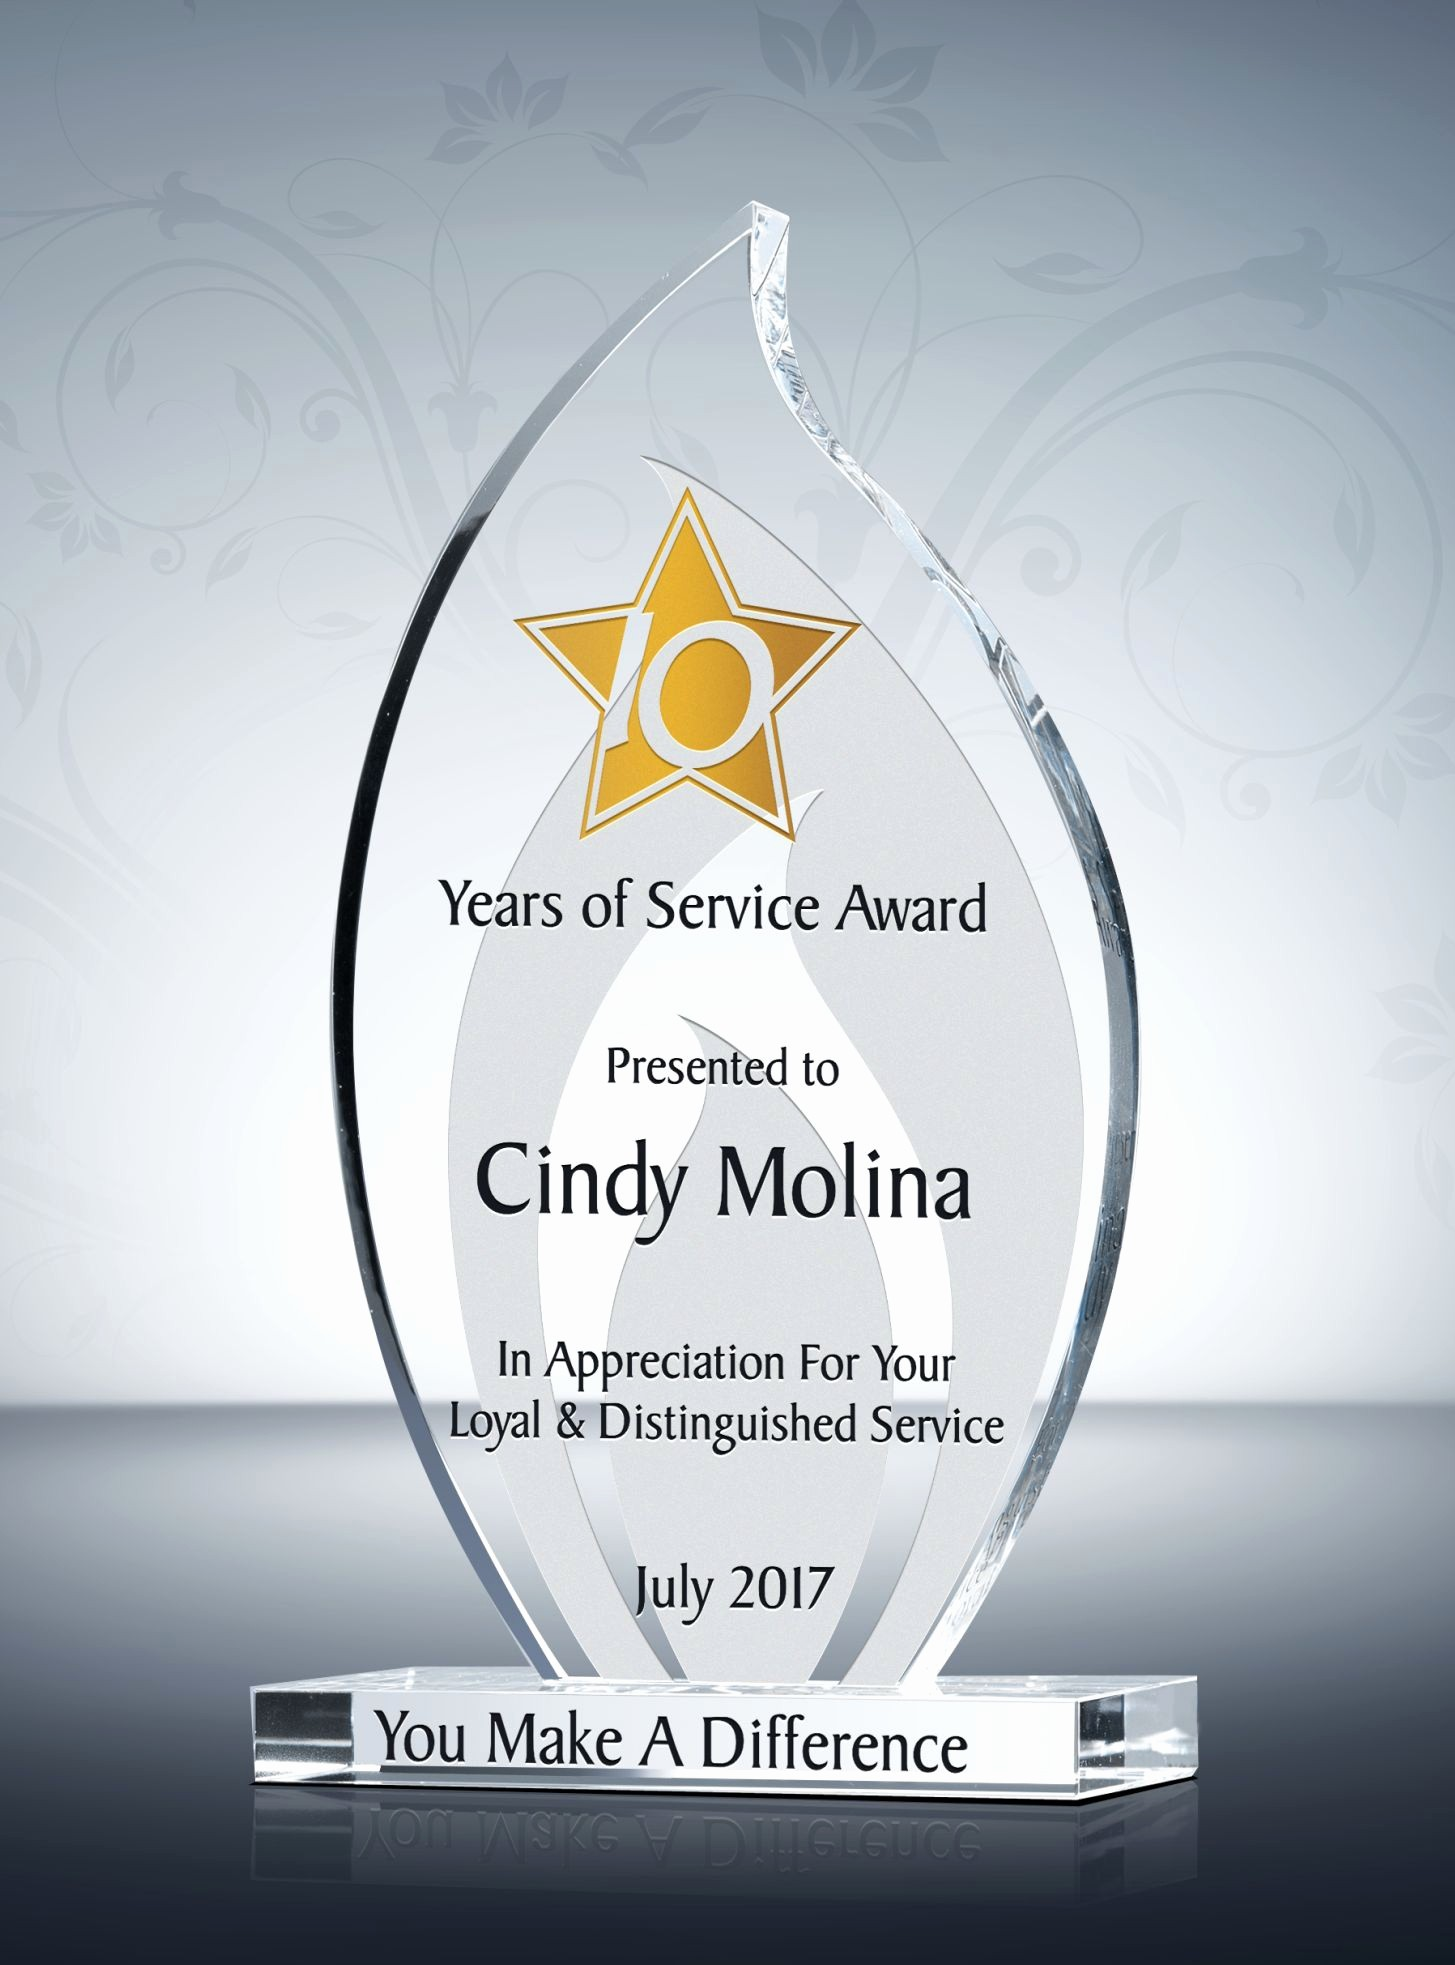 Certificate for Years Of Service Fresh Quotes About 10 Years Of Service 25 Quotes